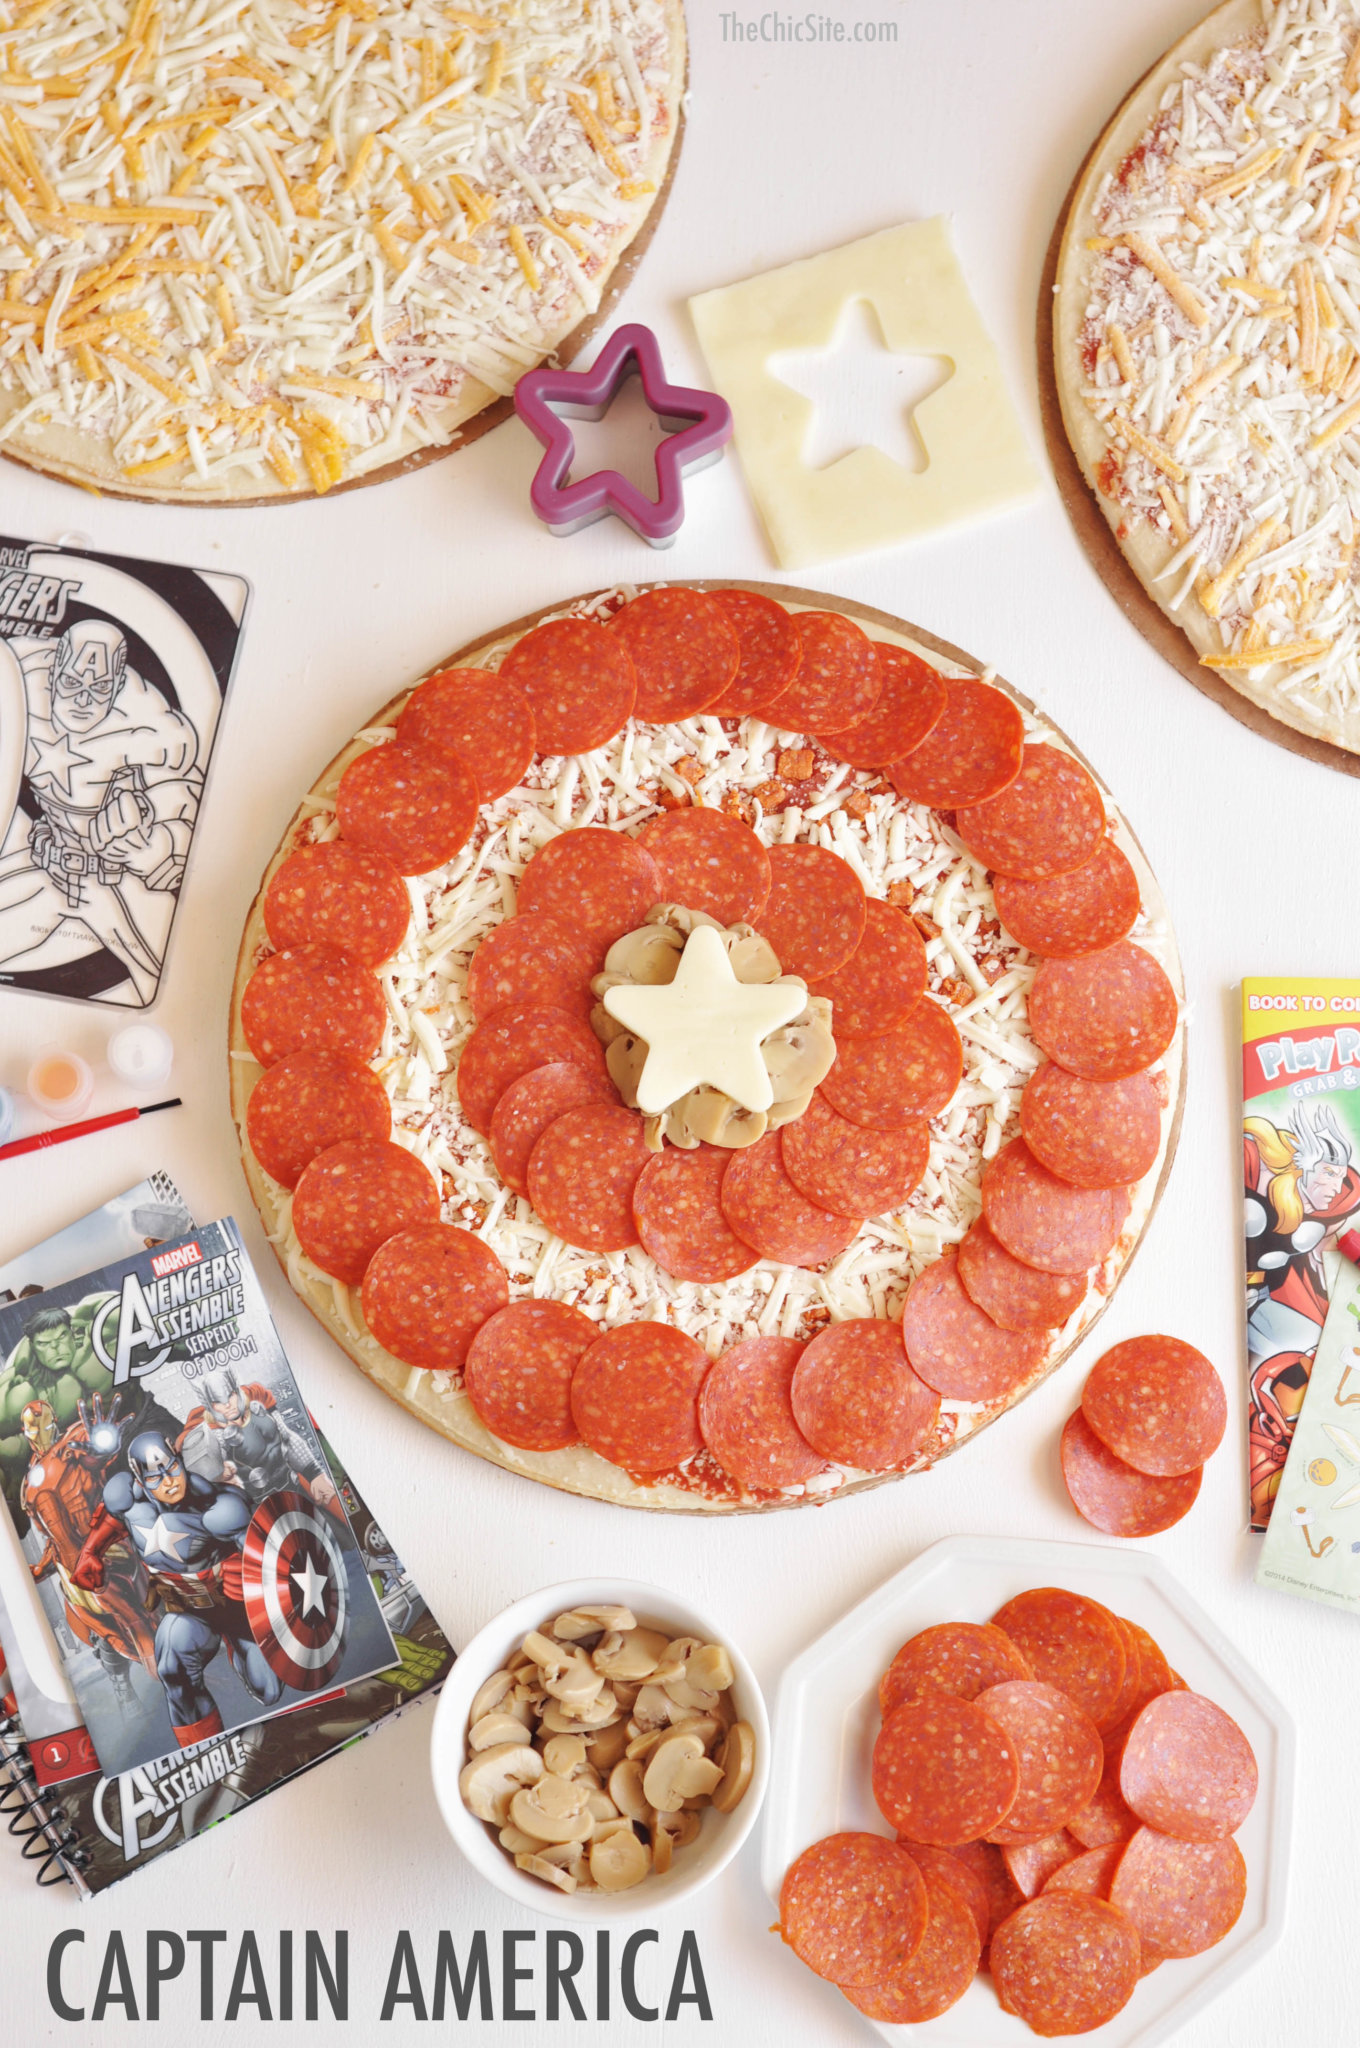 captain-america-pizza.jpg